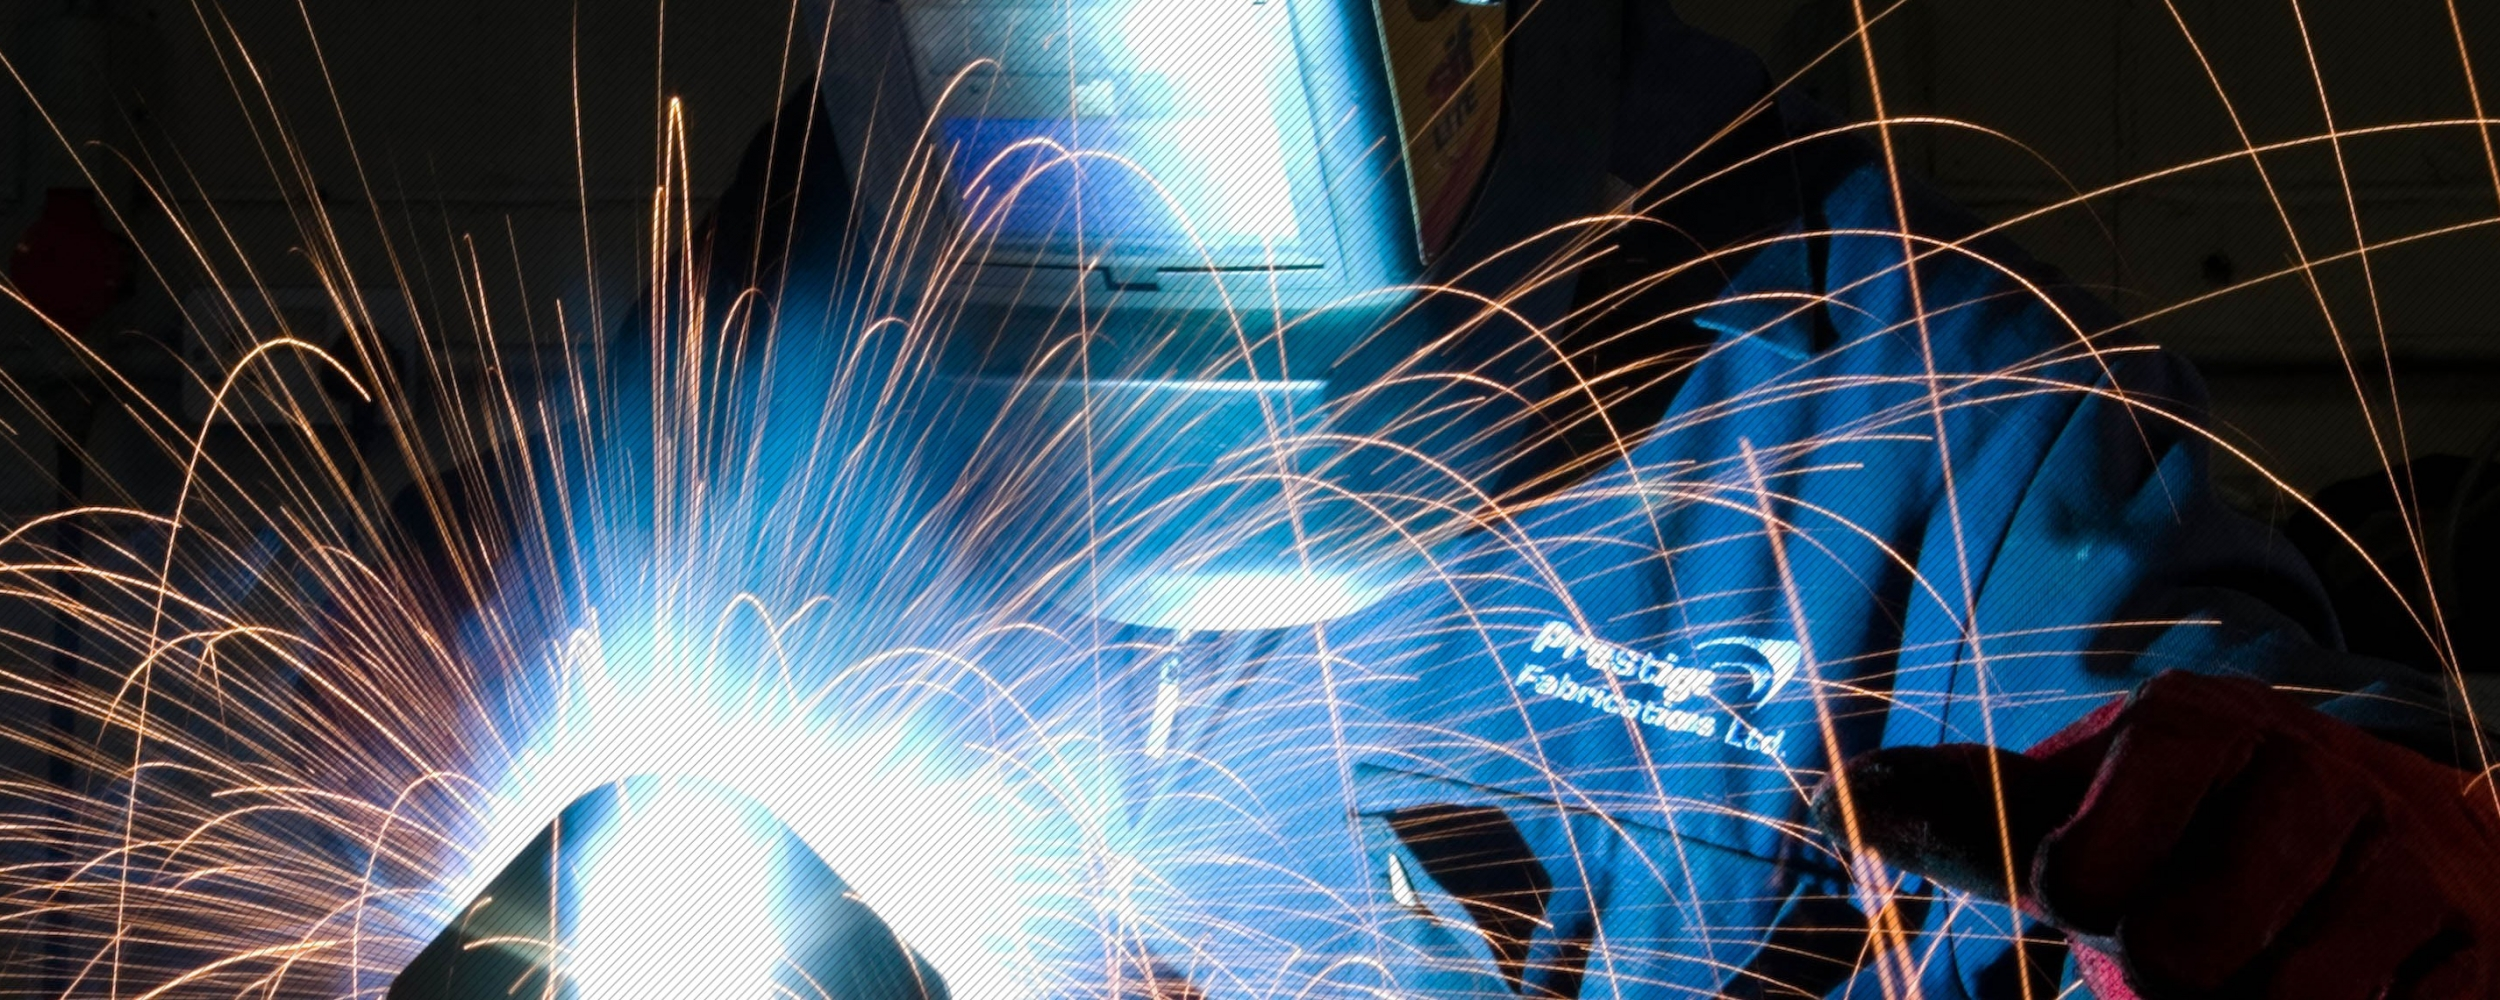 welding-large